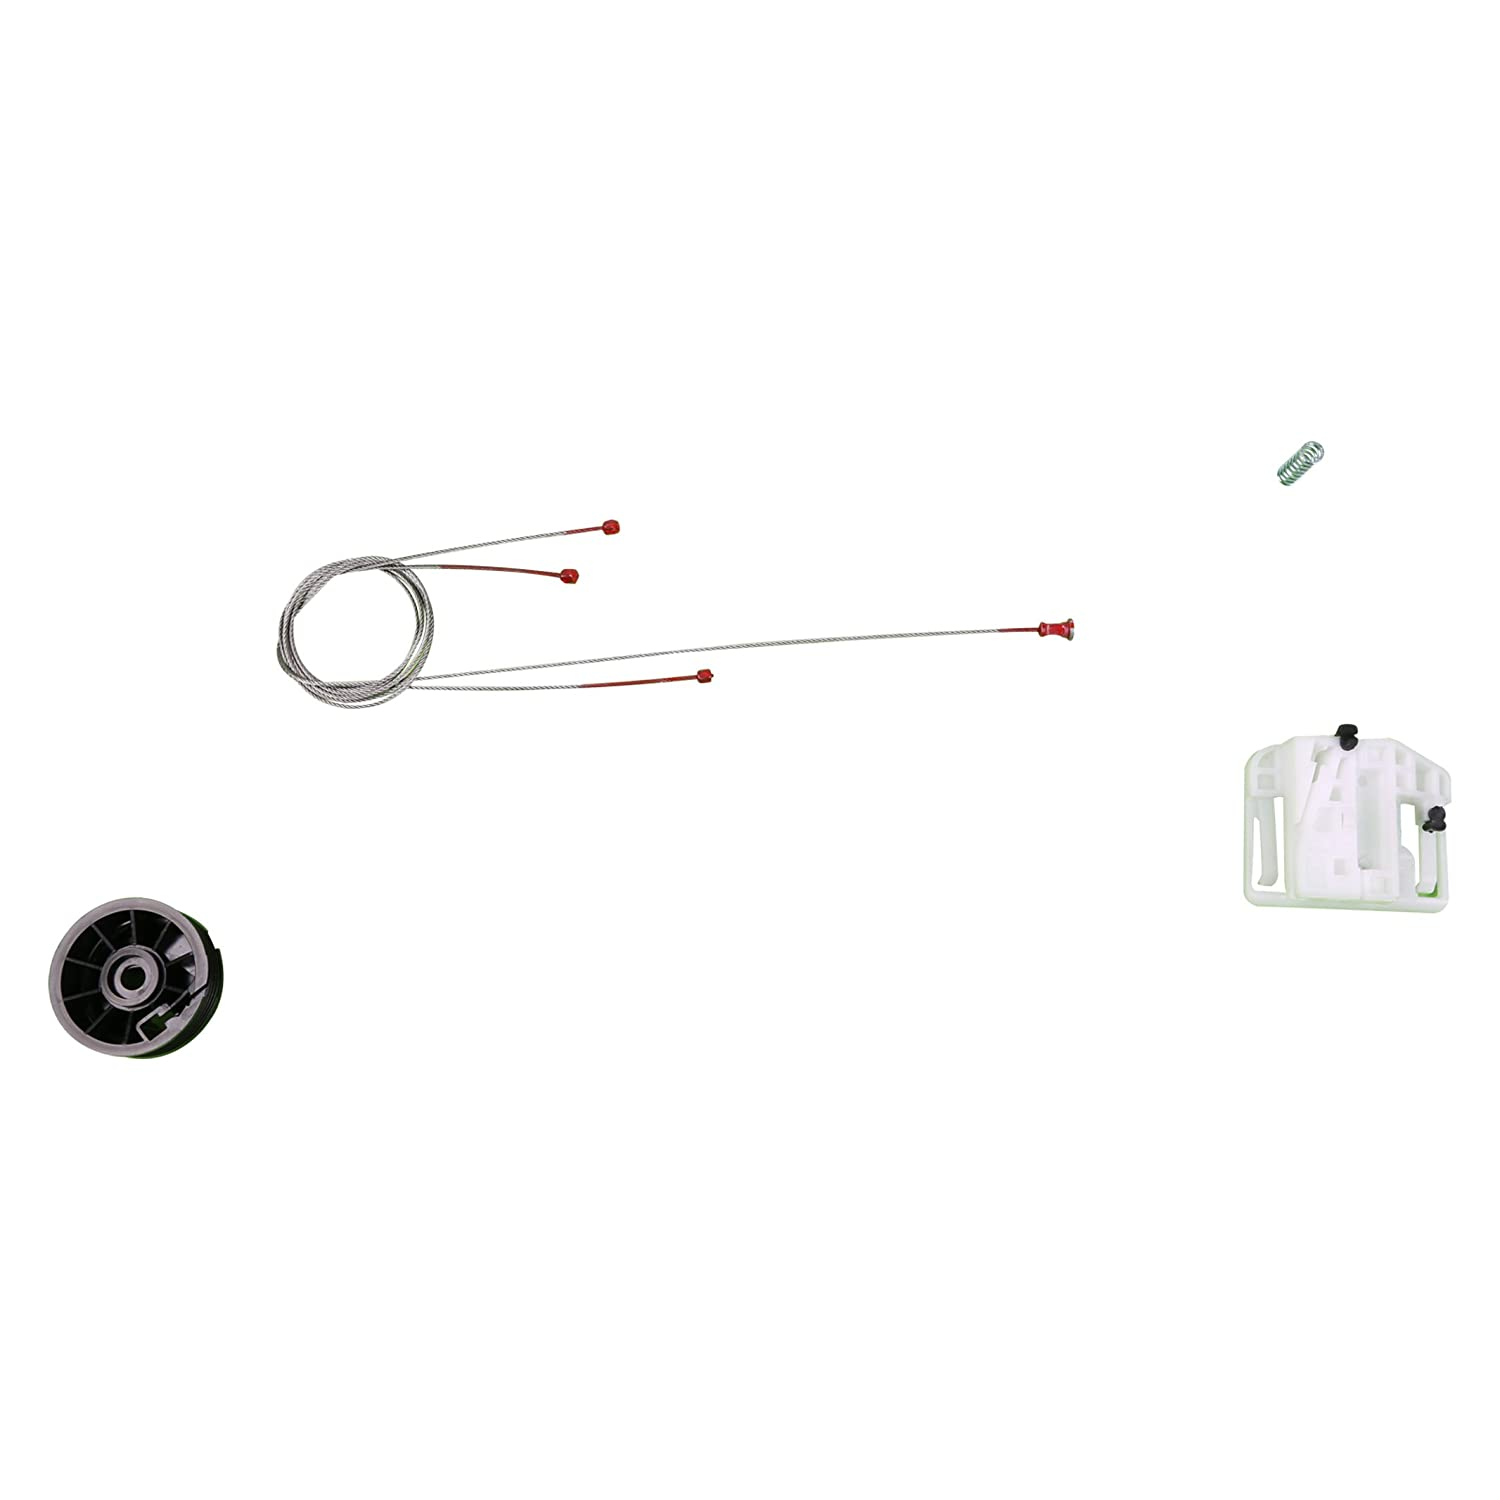 Amazon.com: Bross BWR272 Window Regulator Repair Kit Rear Left Door for Renault Megane 2 2002-2008: Automotive